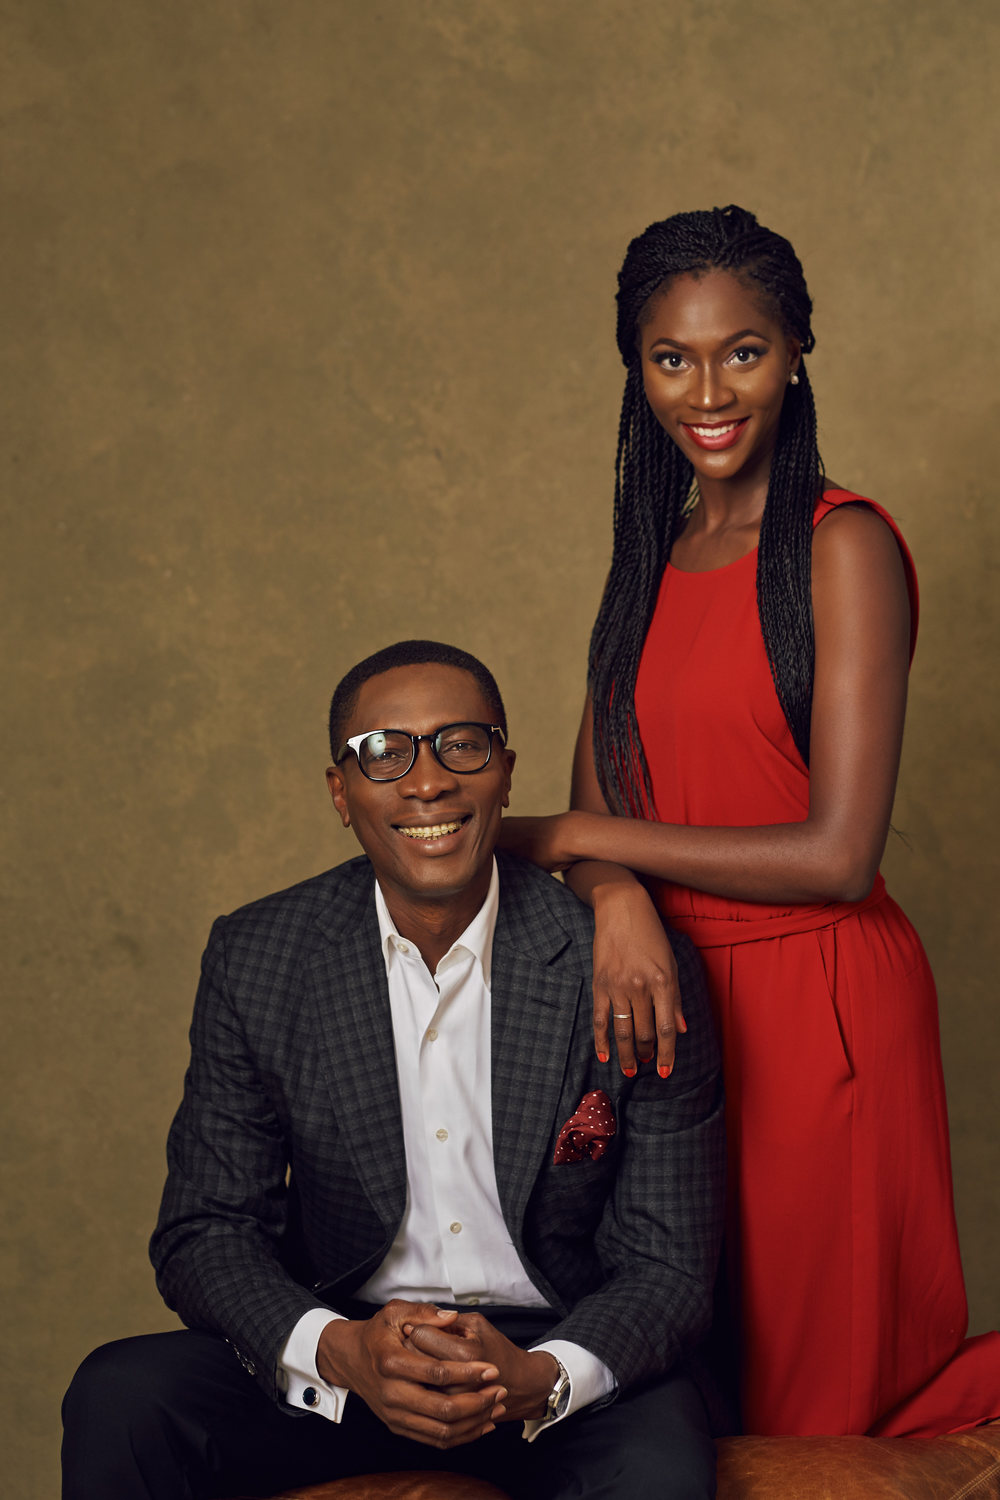 Dr Tony Rapu and his daughter, Kene Pic Credit: Obi Somto Photography